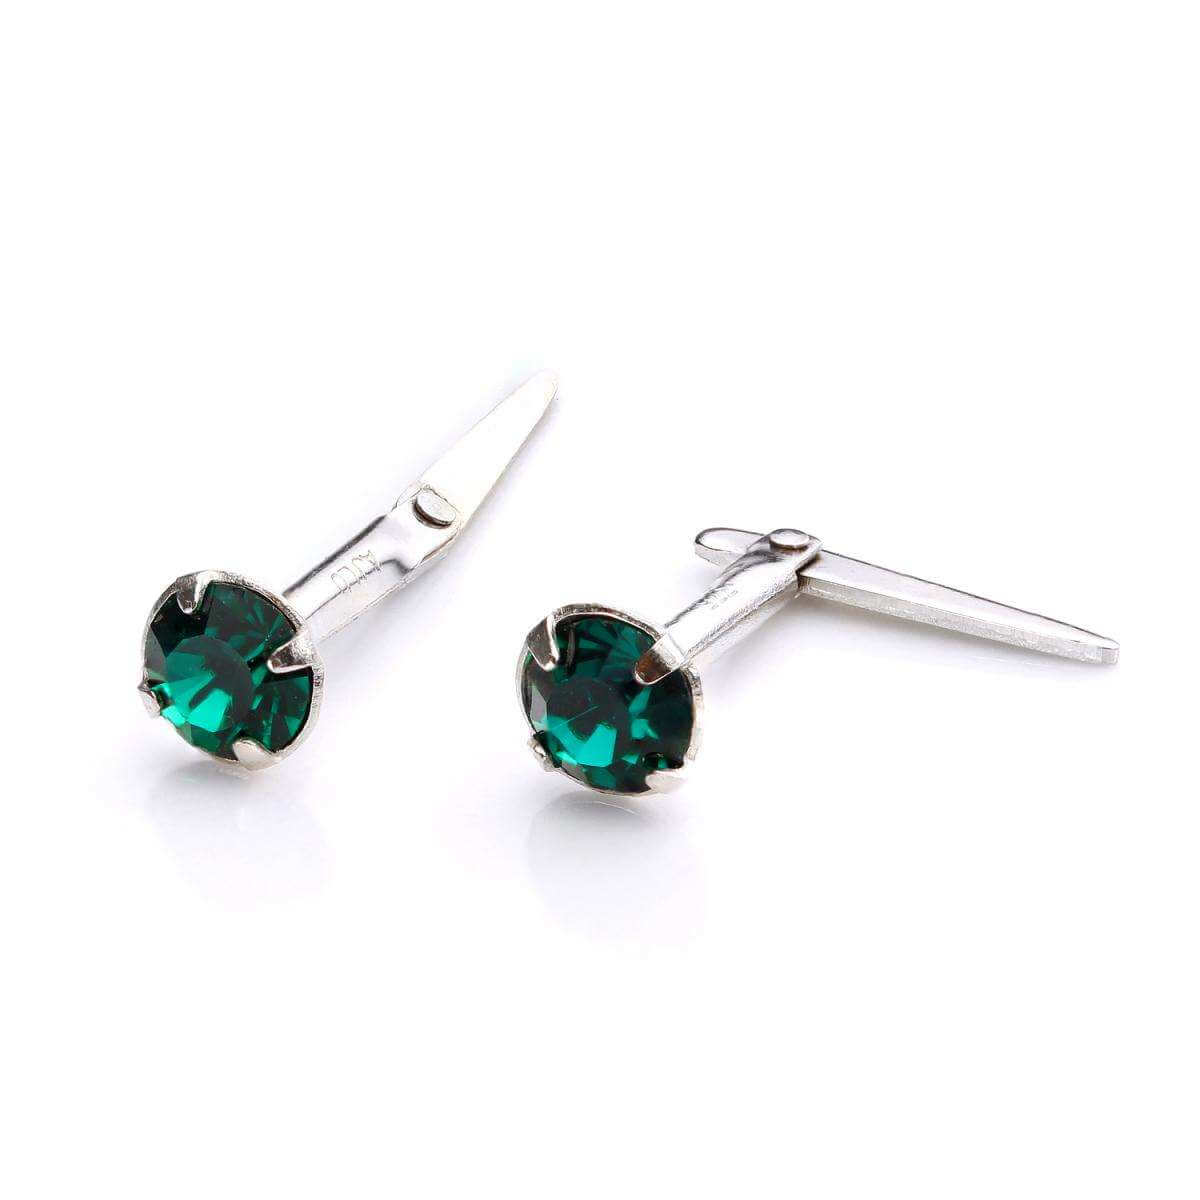 Sterling Silver Andralok Stud Earrings with 3mm Emerald Crystal